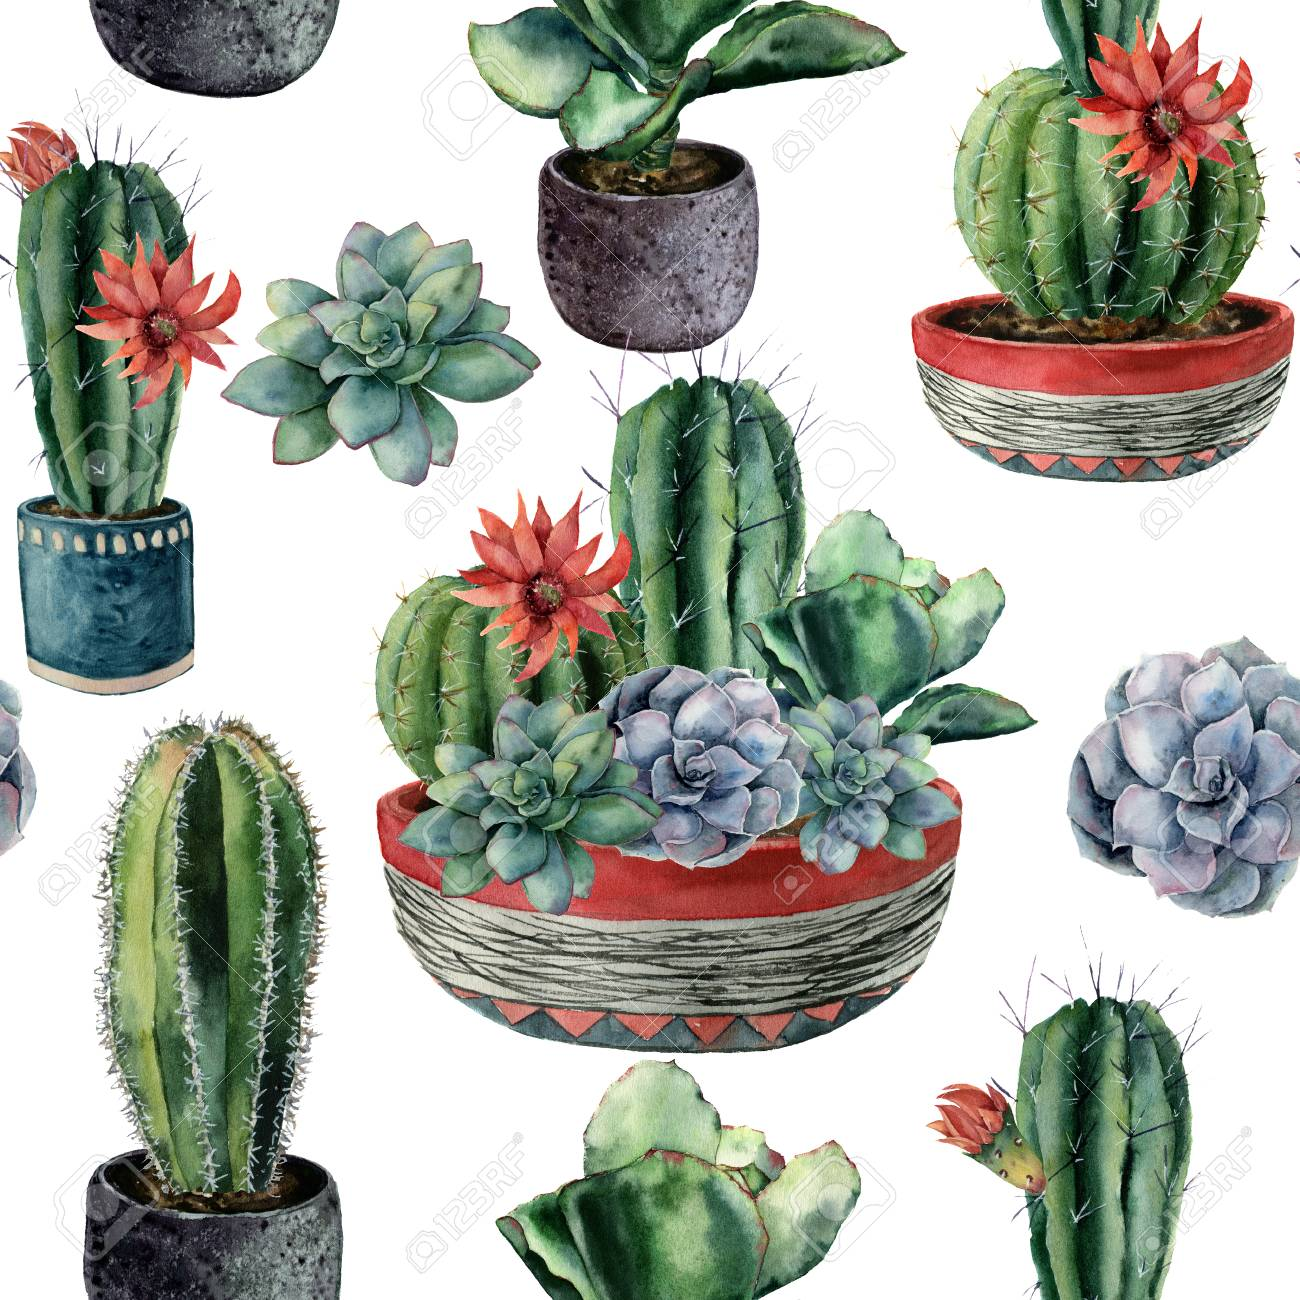 Watercolor Cactus Seamless Pattern Hand Painted Cereus Echeveria Stock Photo Picture And Royalty Free Image Image 99287691